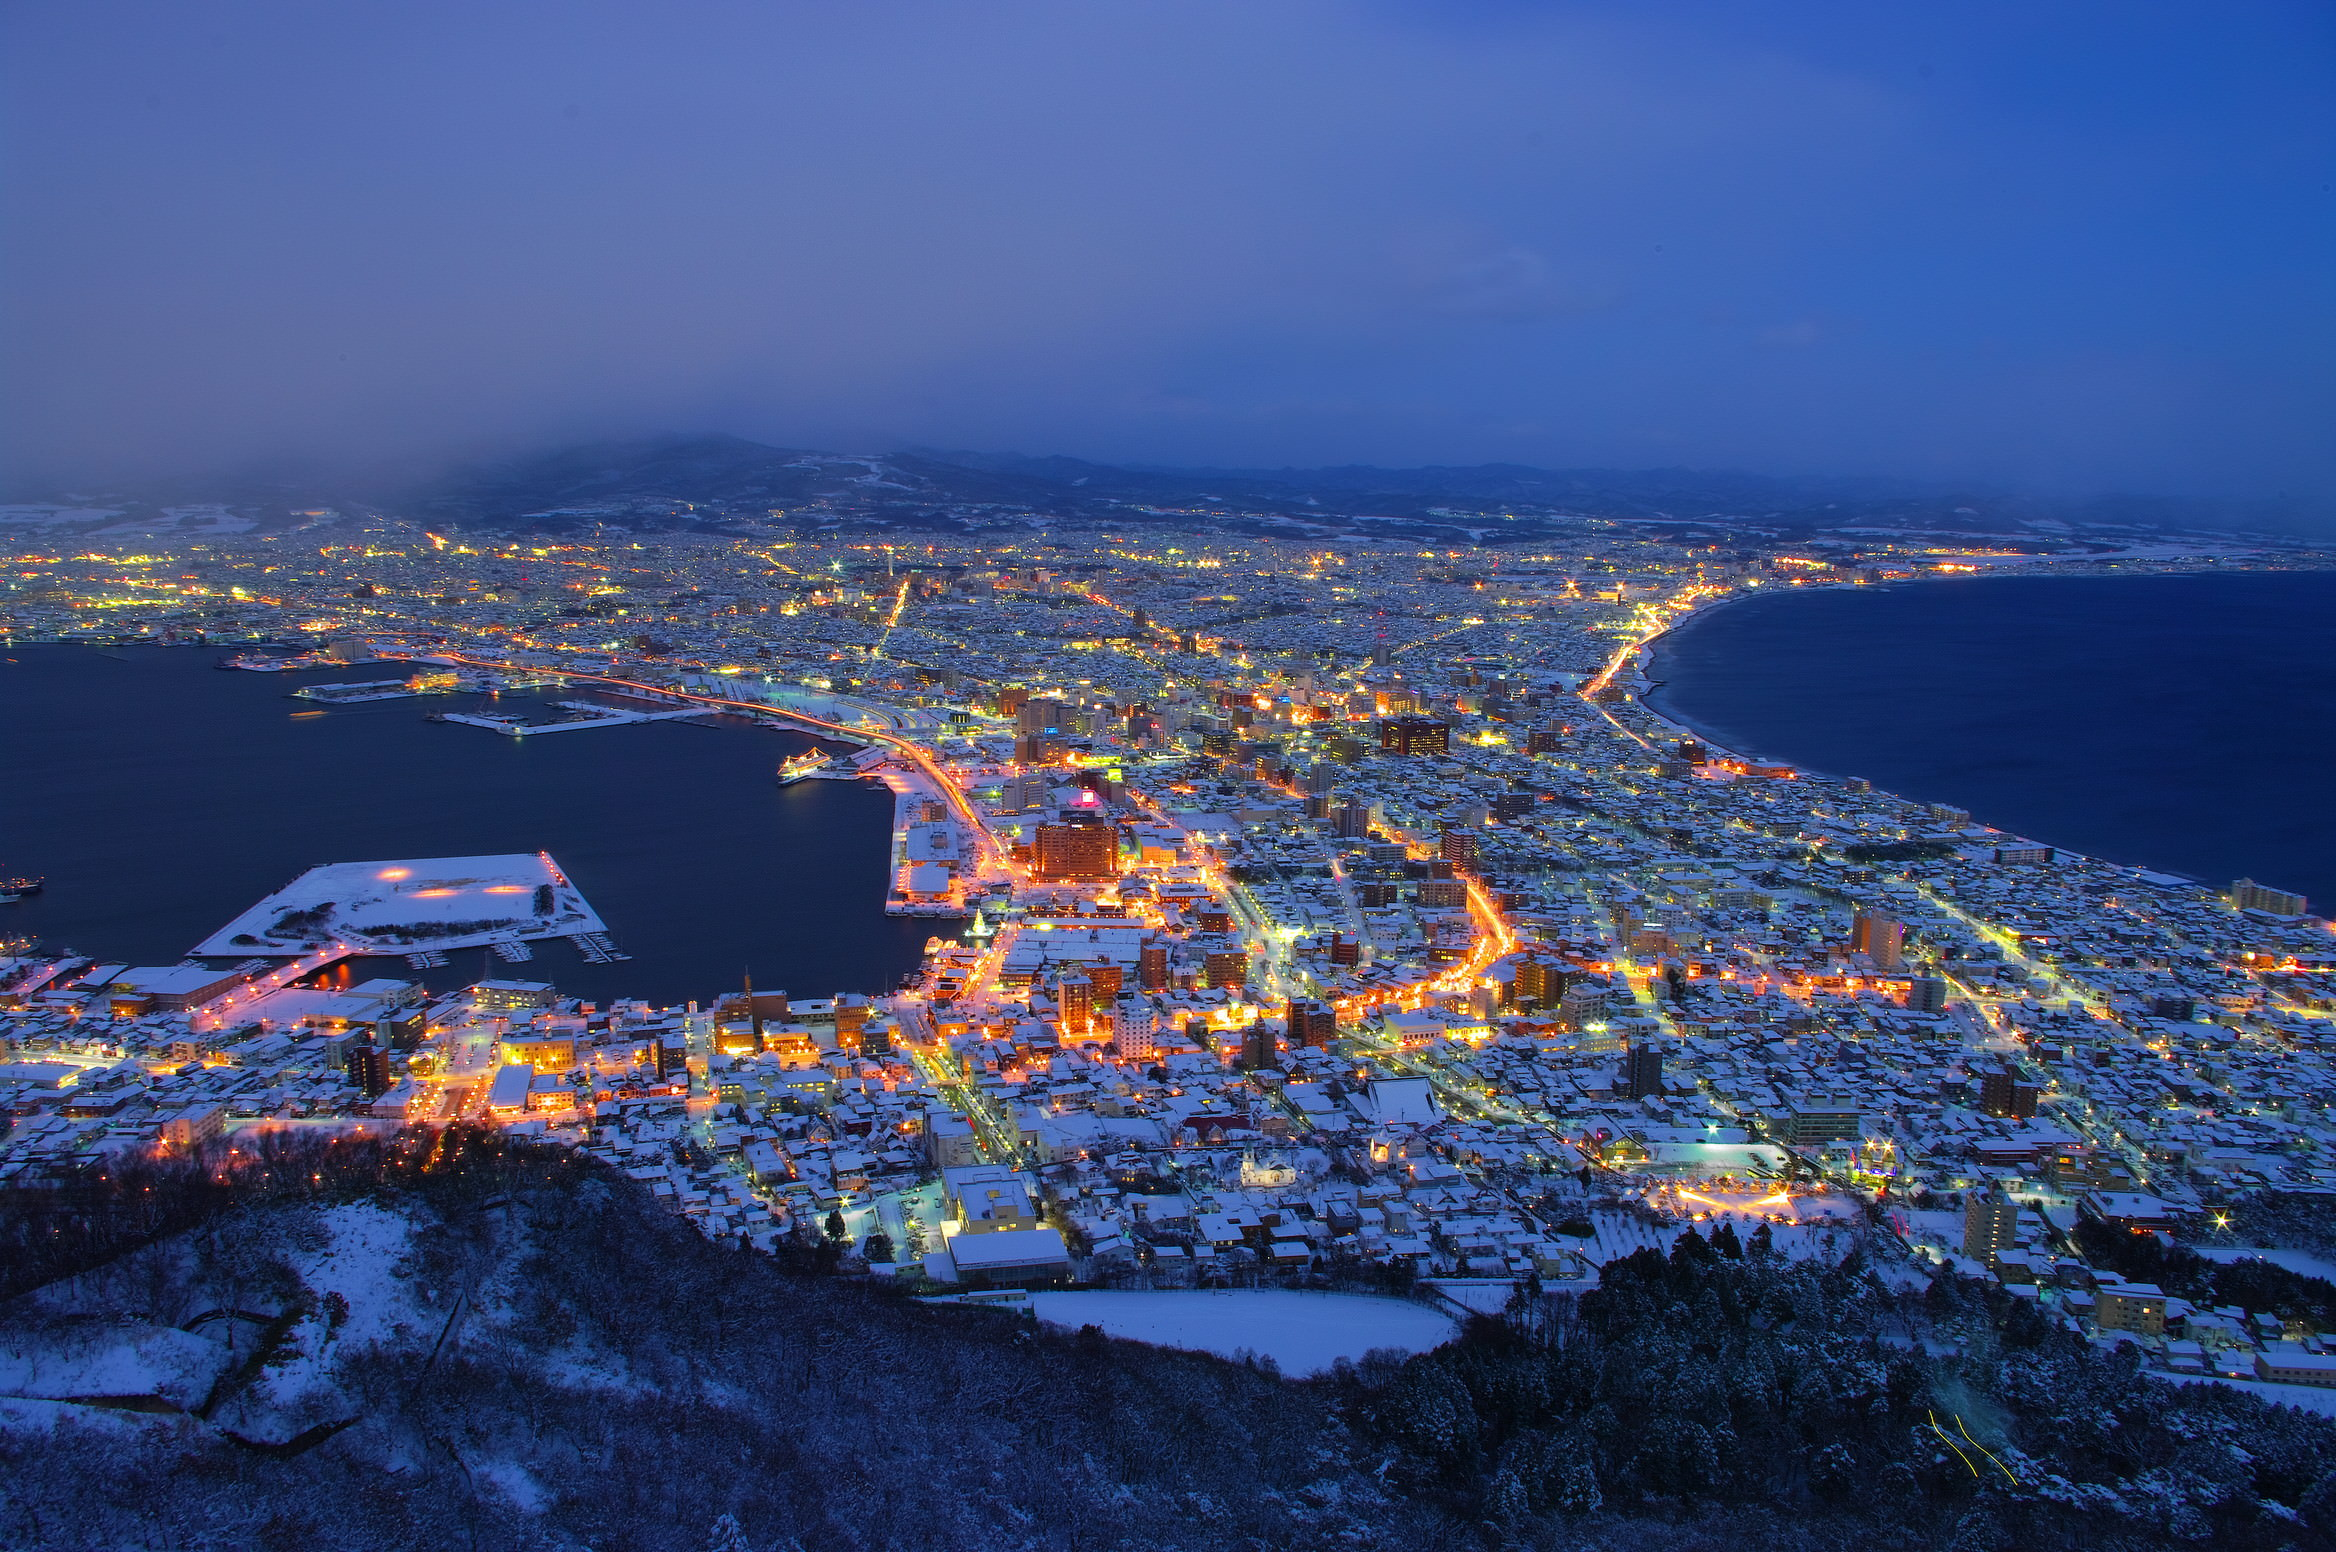 The_night_view_from_Mt_Hakodate-3-1MB